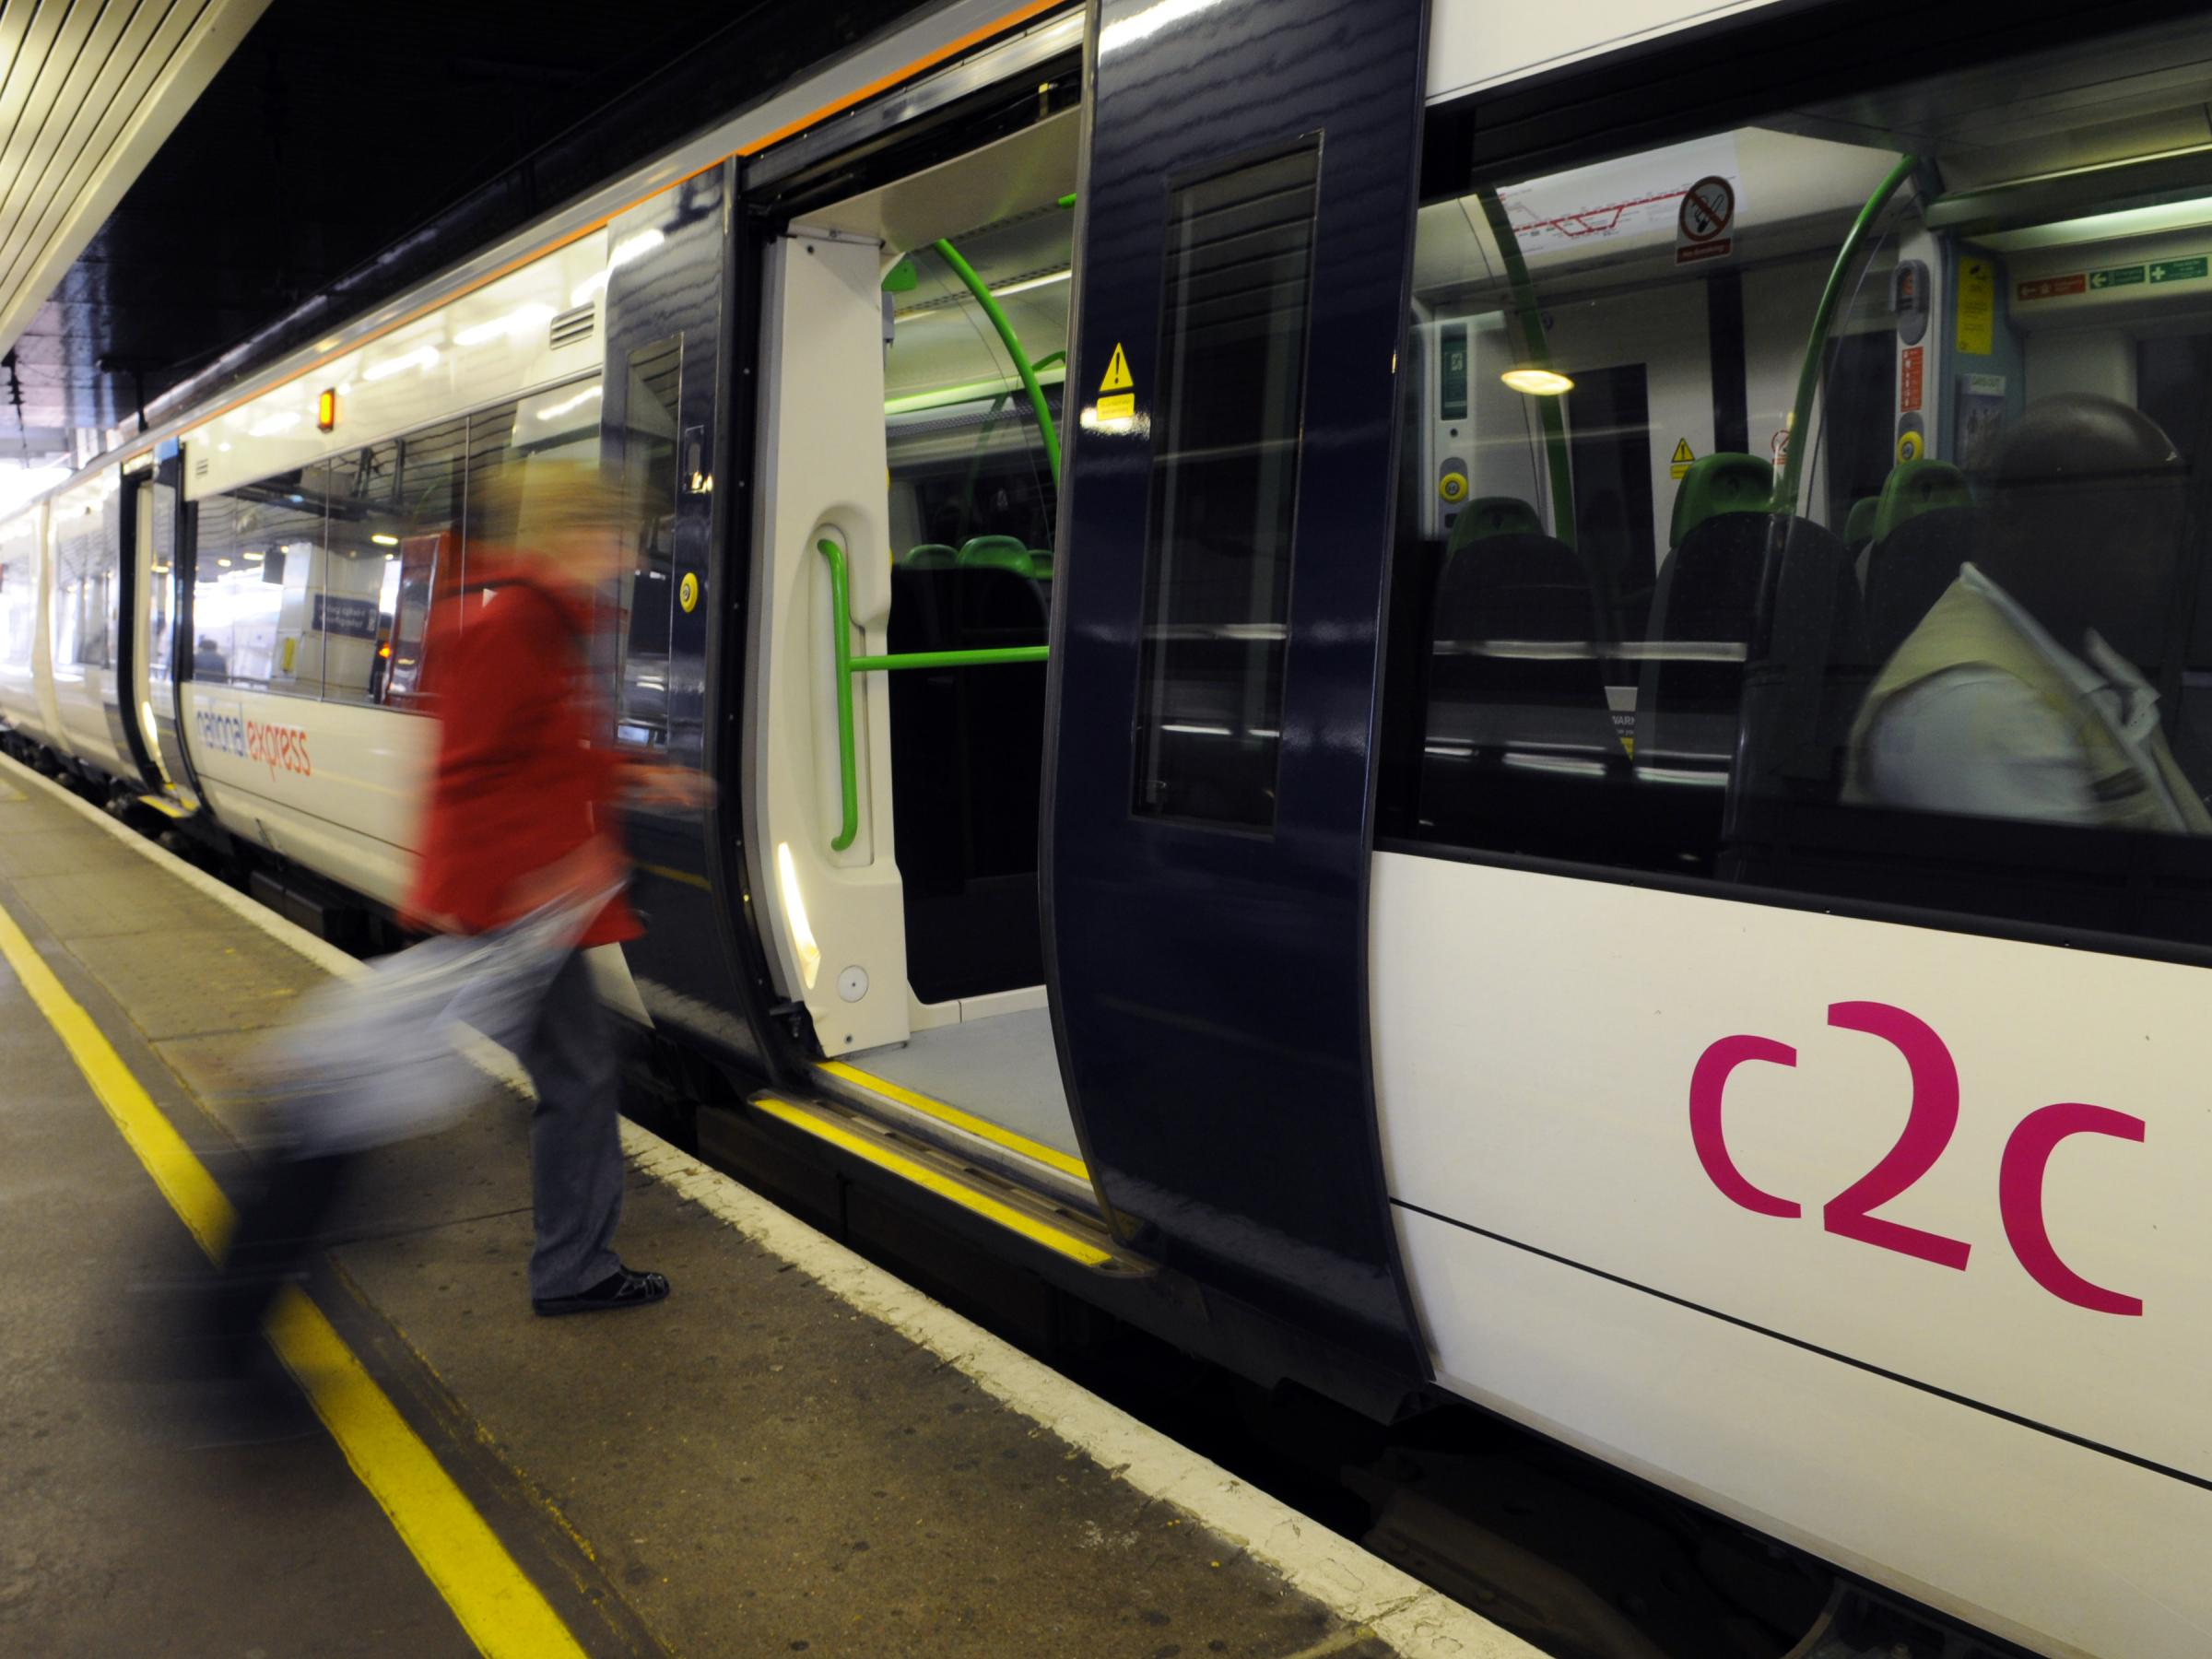 c2c offer cash back to delay-hit season ticket holders